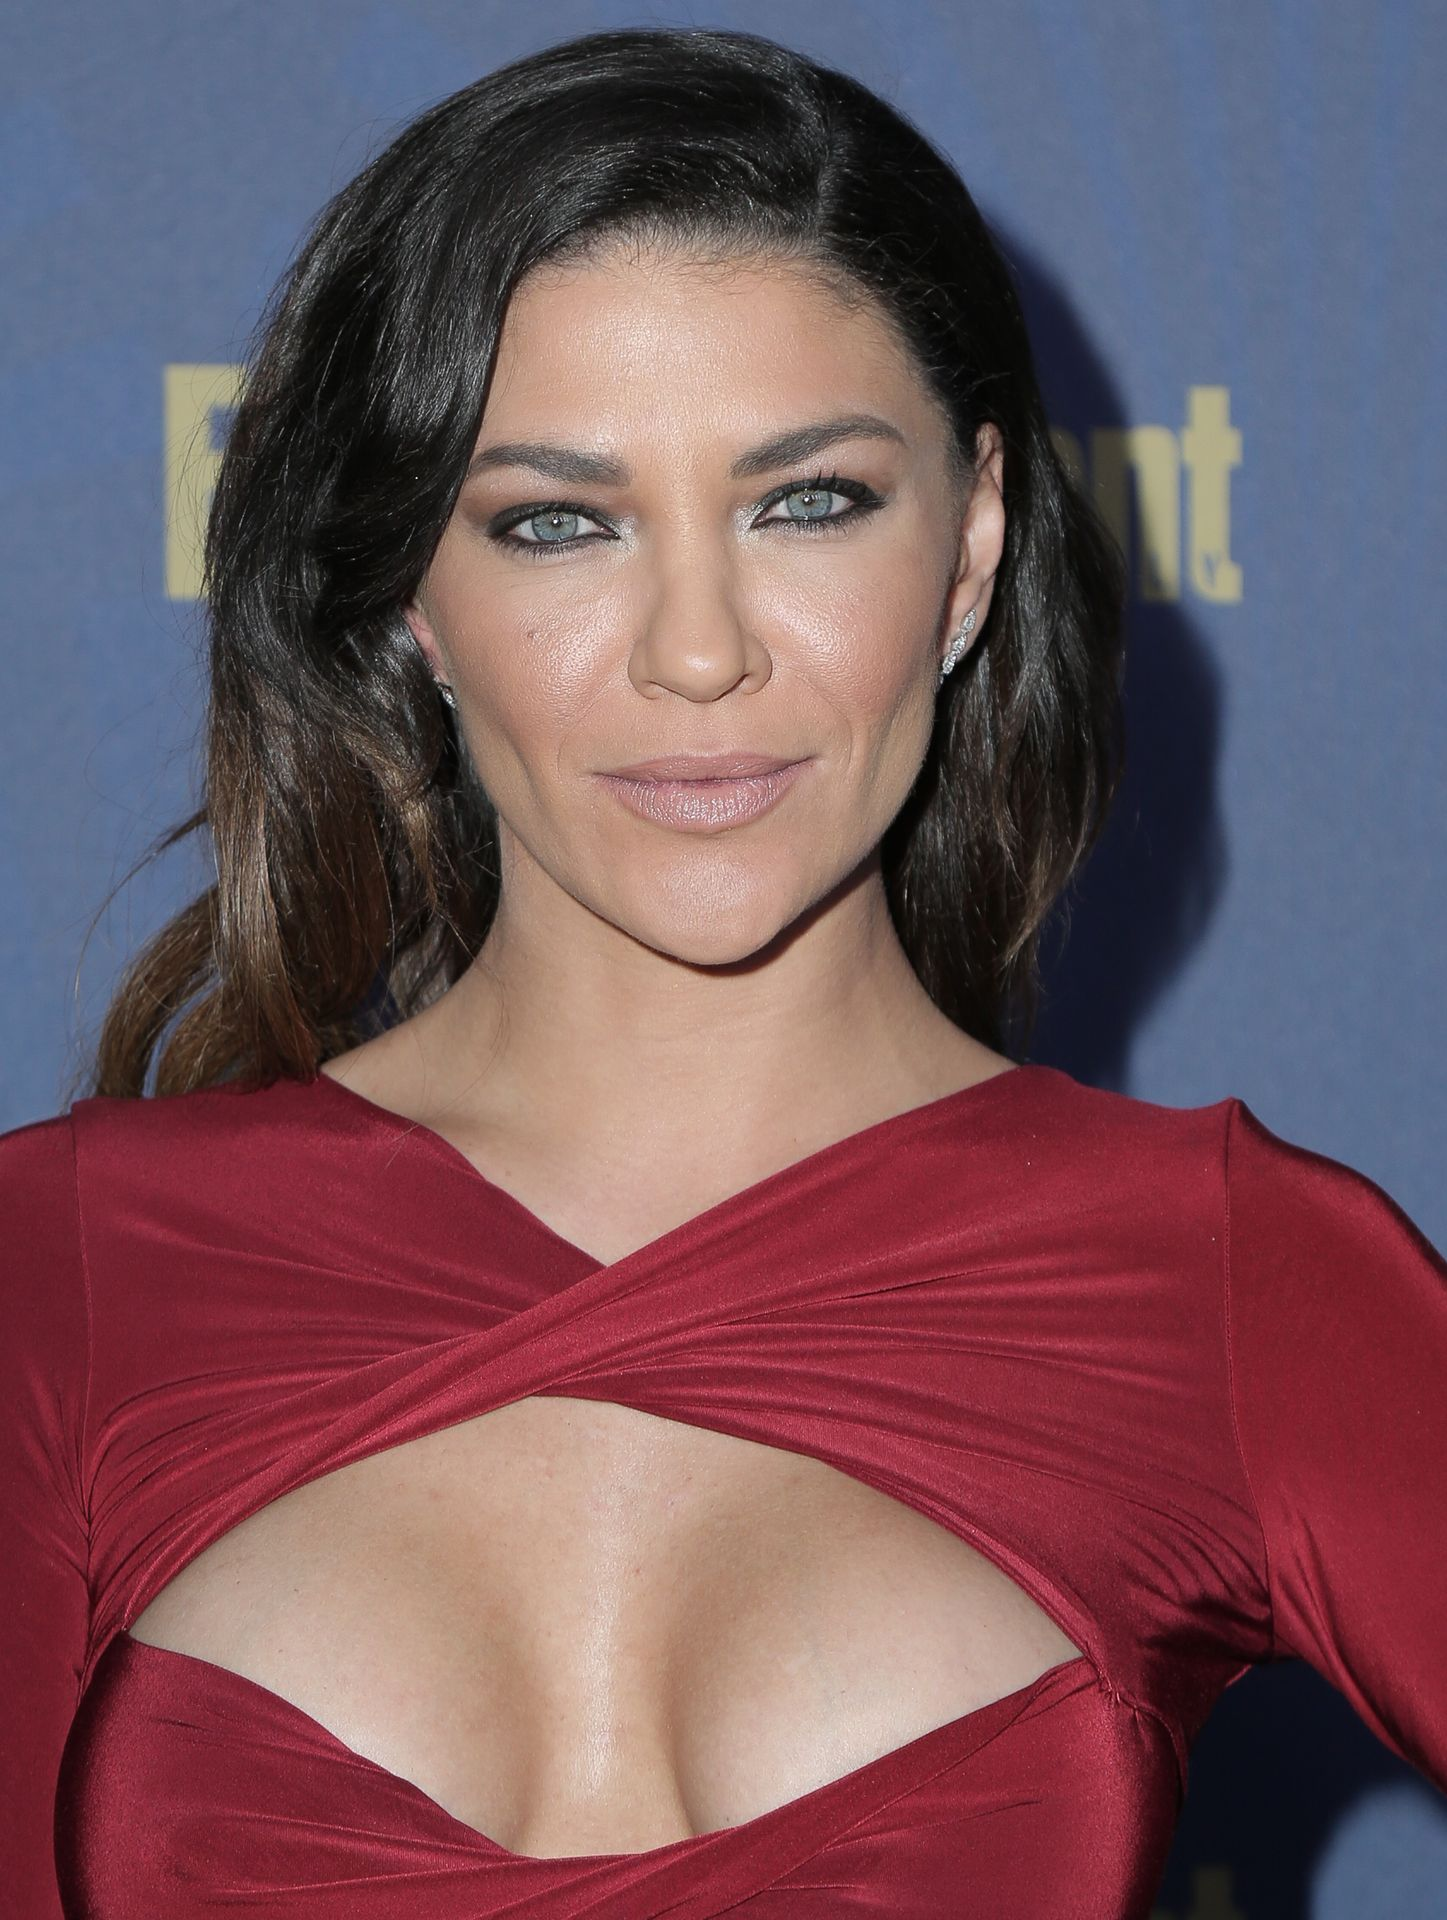 Jessica Szohr Shows Her Cleavage At The Entertainment Weekly Pre Sag Awards Celebration 0015